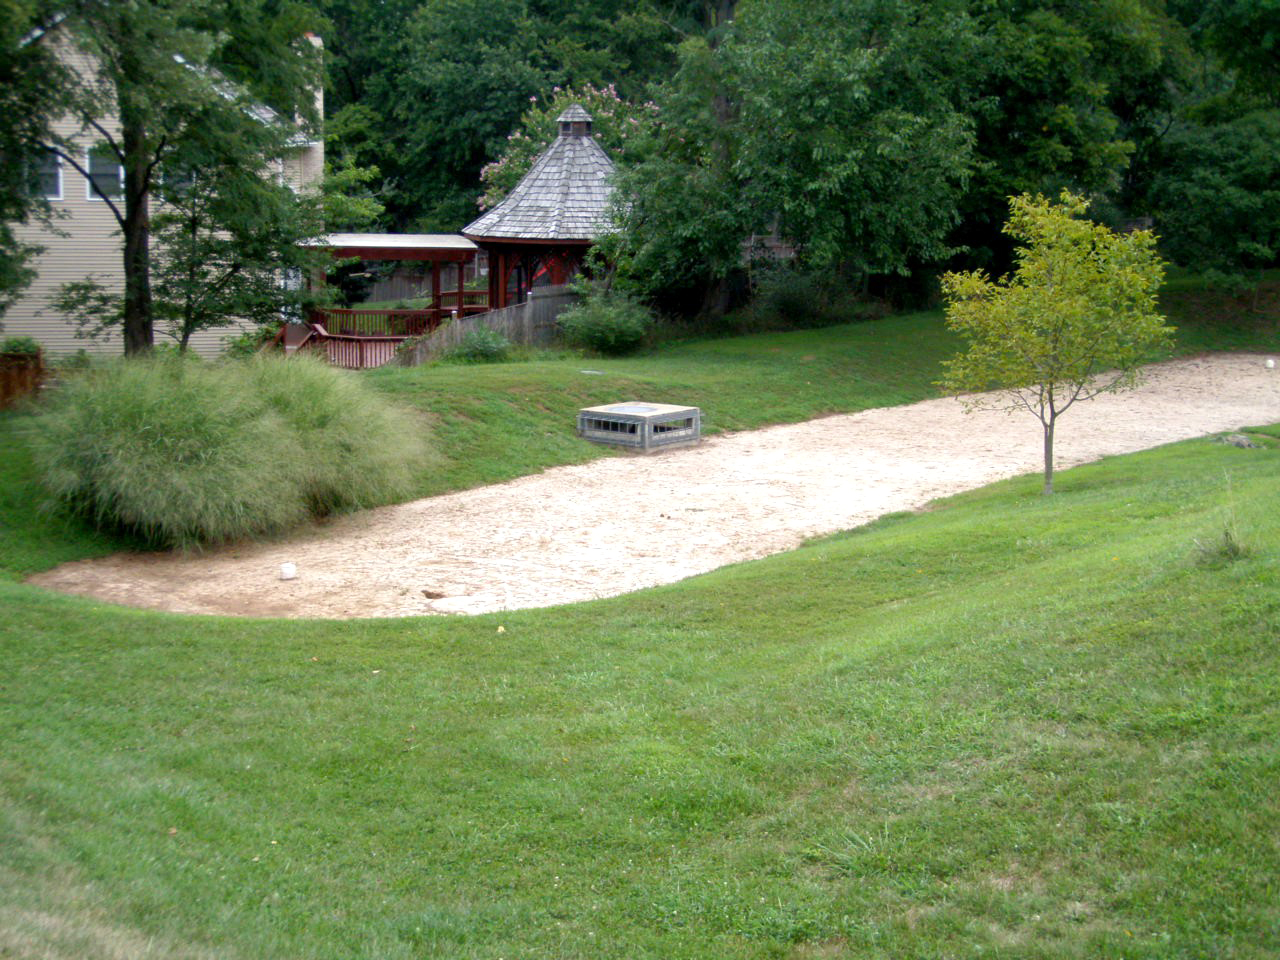 Image of a sand filter after cleaning. Vegetation was removed.